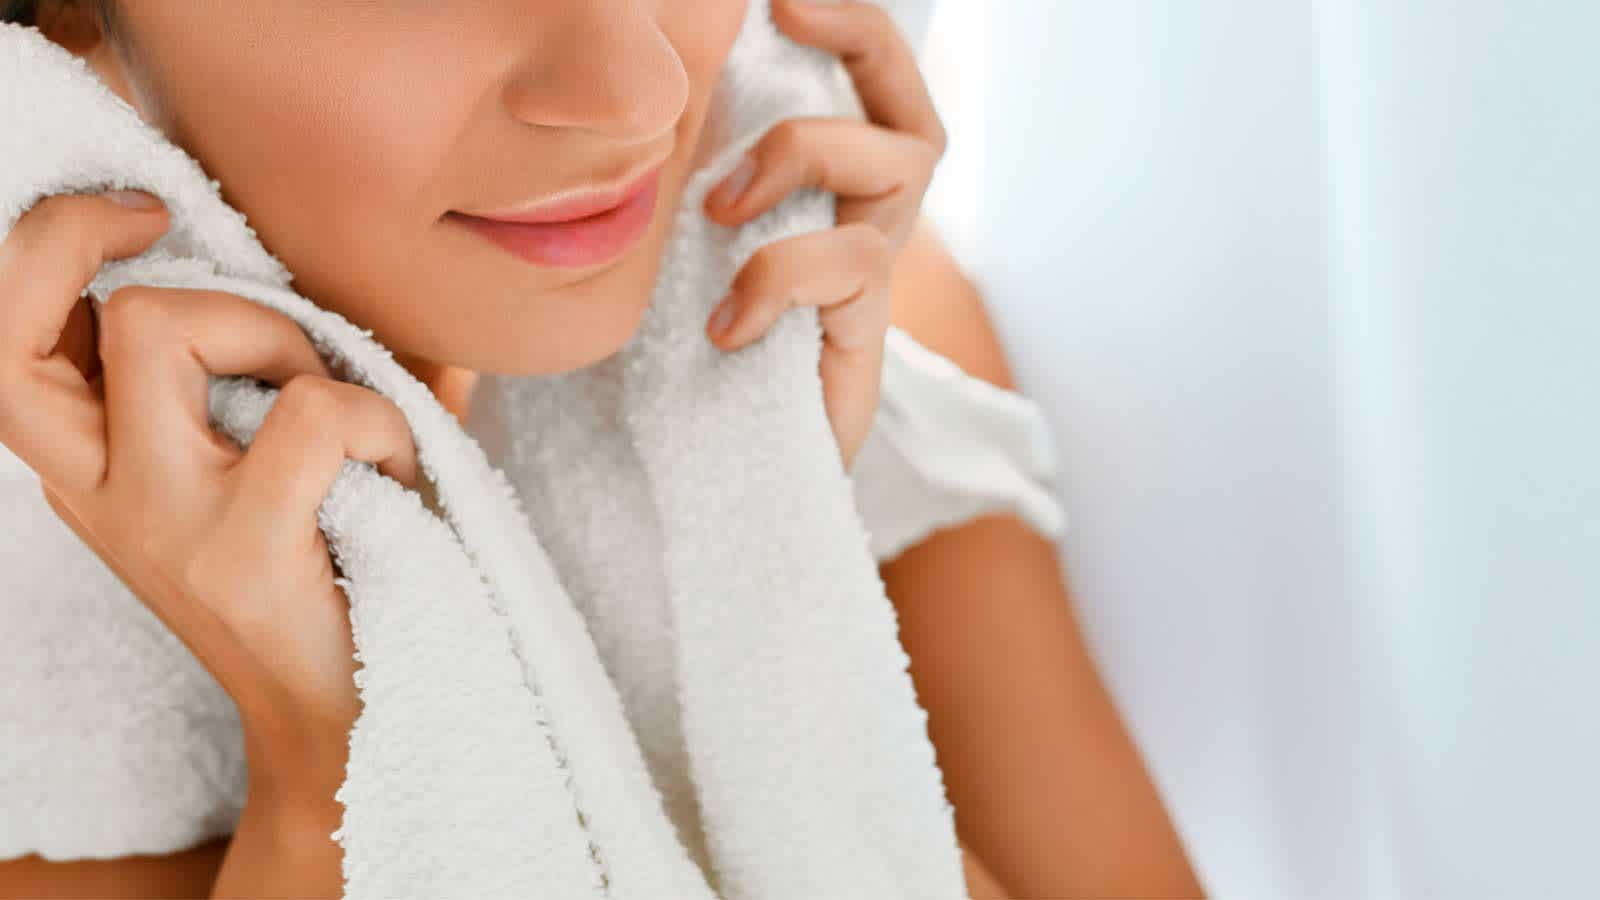 Hydrate Your Face Skin with Warm, Damp Wash Cloth to Shave More Easily